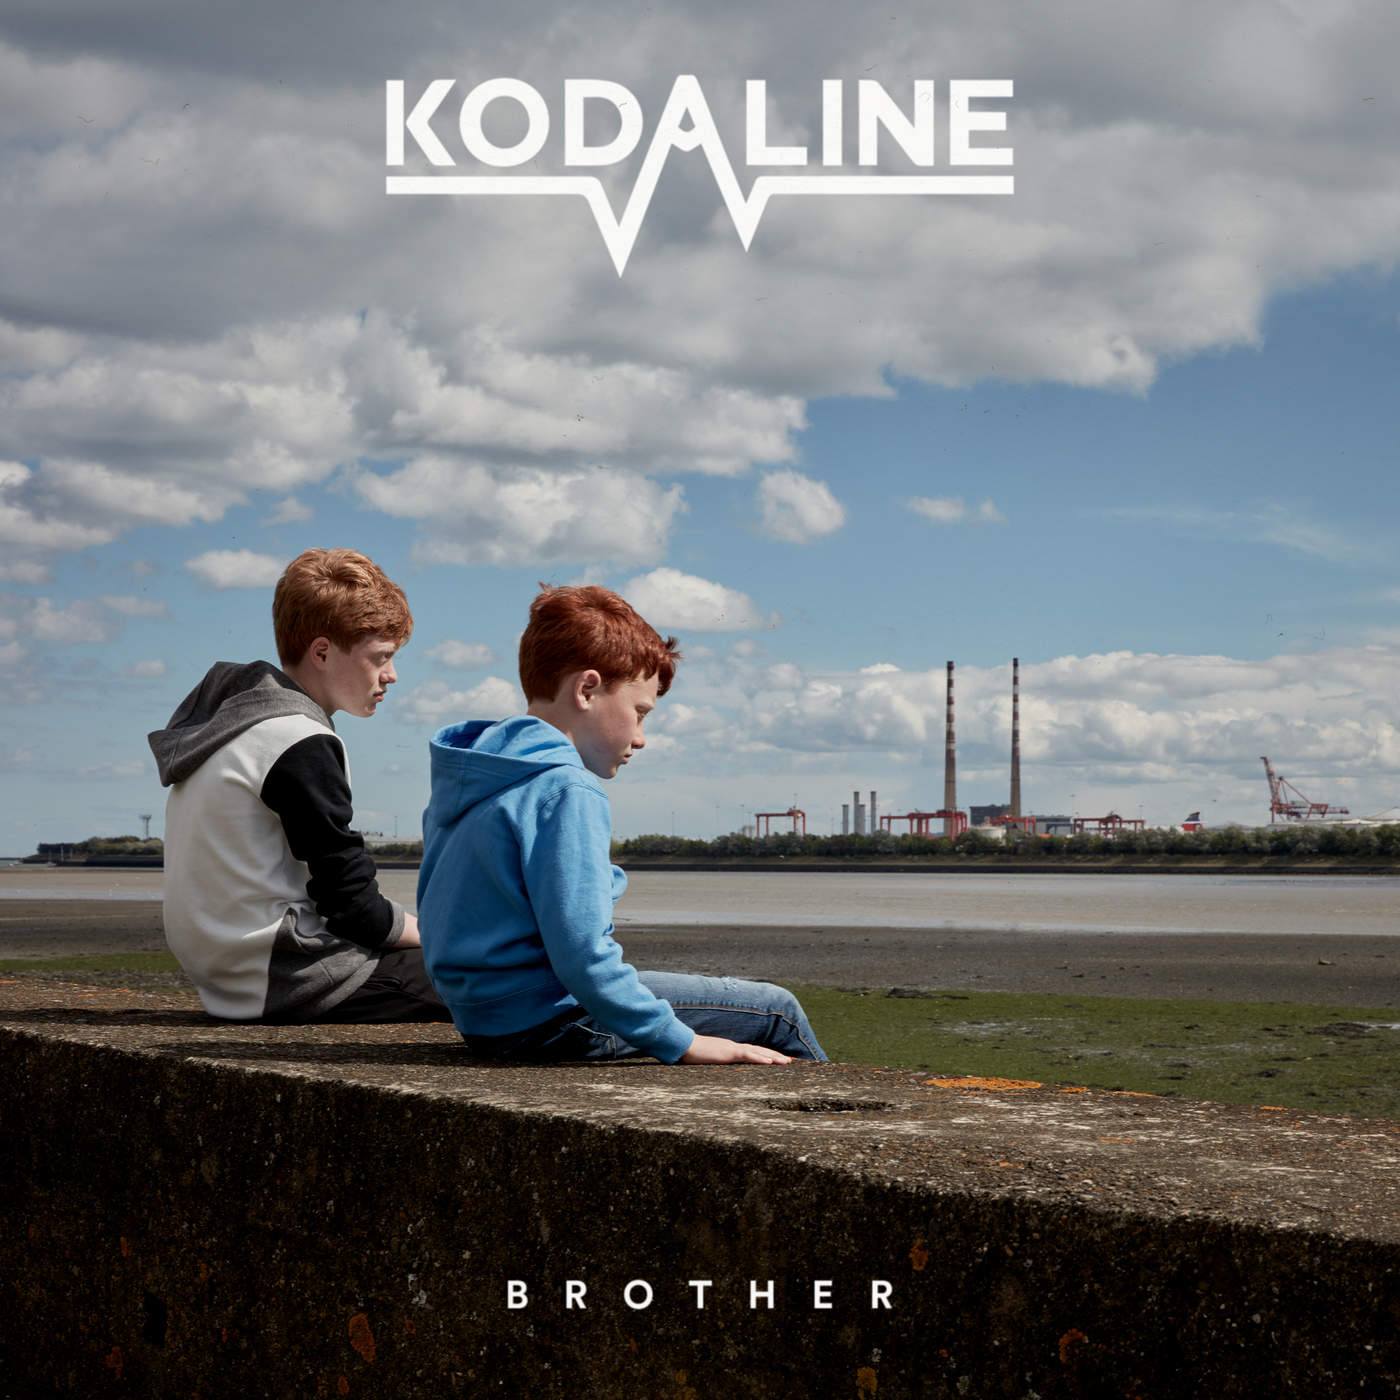 Kodaline - Brother (Acoustic) - Single Cover